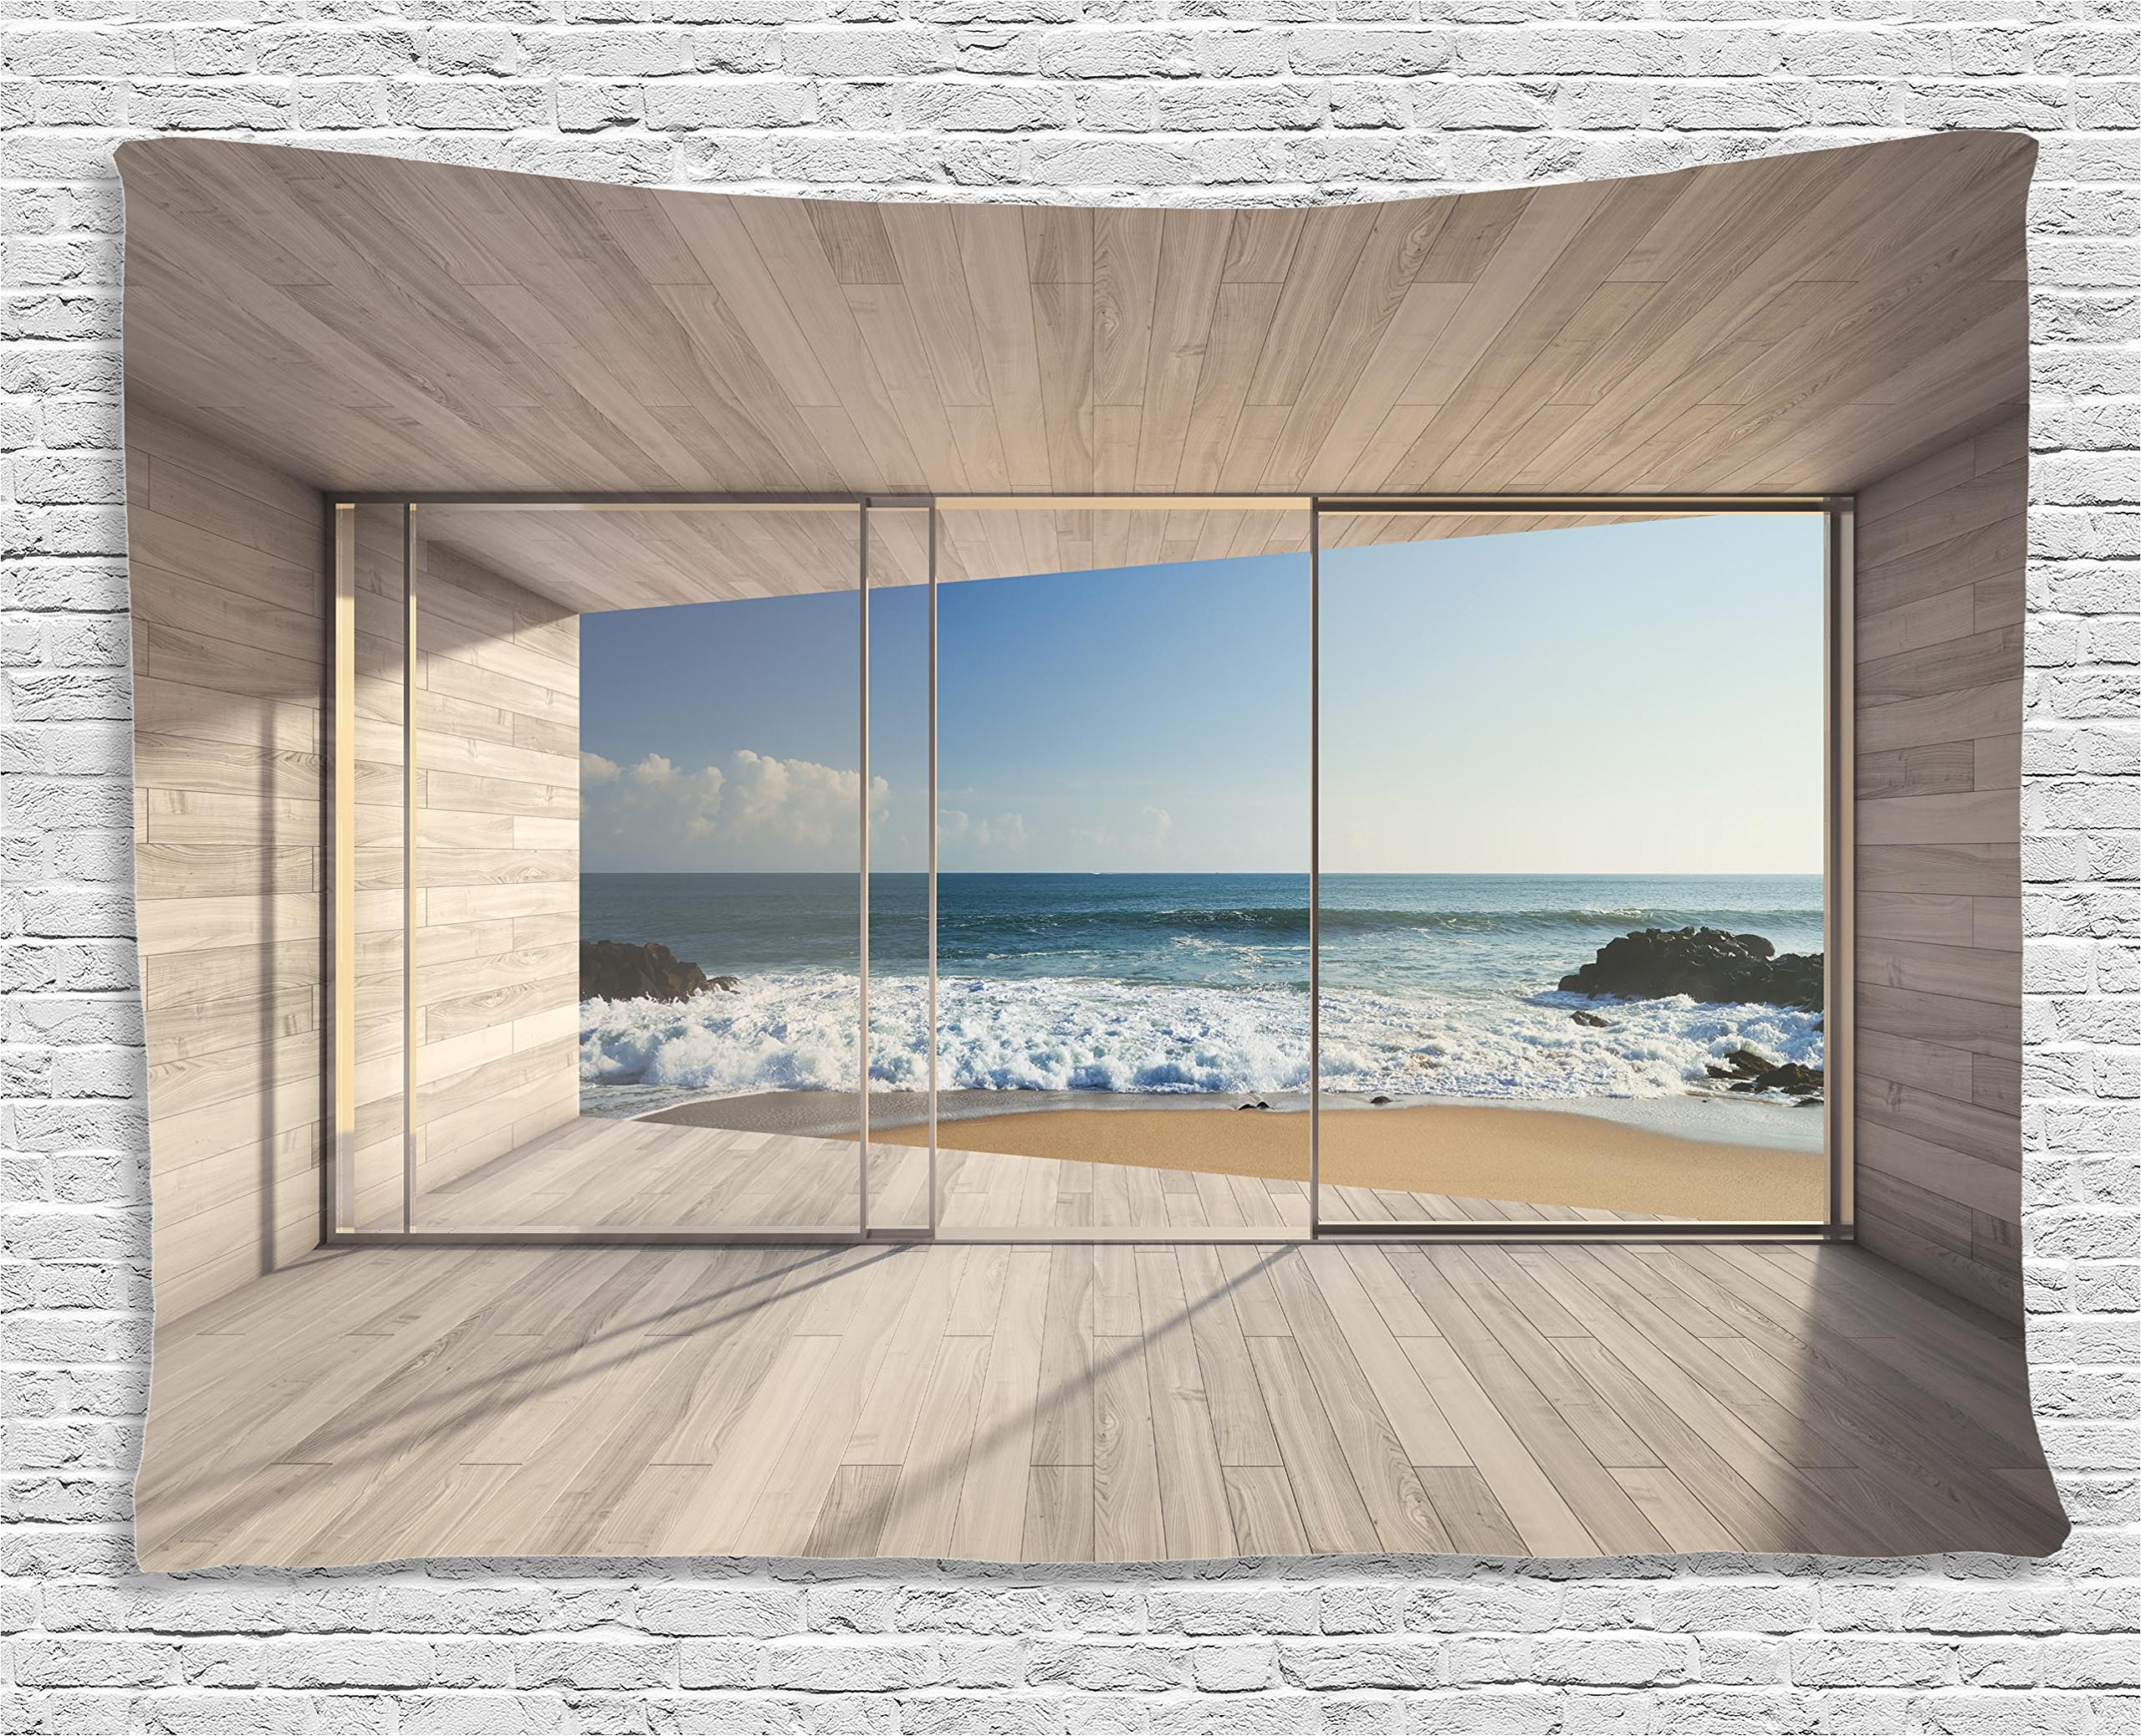 Ambesonne House Decor Tapestry, Empty Modern Lounge Area with Large Window and View of Sea Waves Rocks, Wall Hanging for Bedroom Living Room Dorm, 80 W X 60 L inch